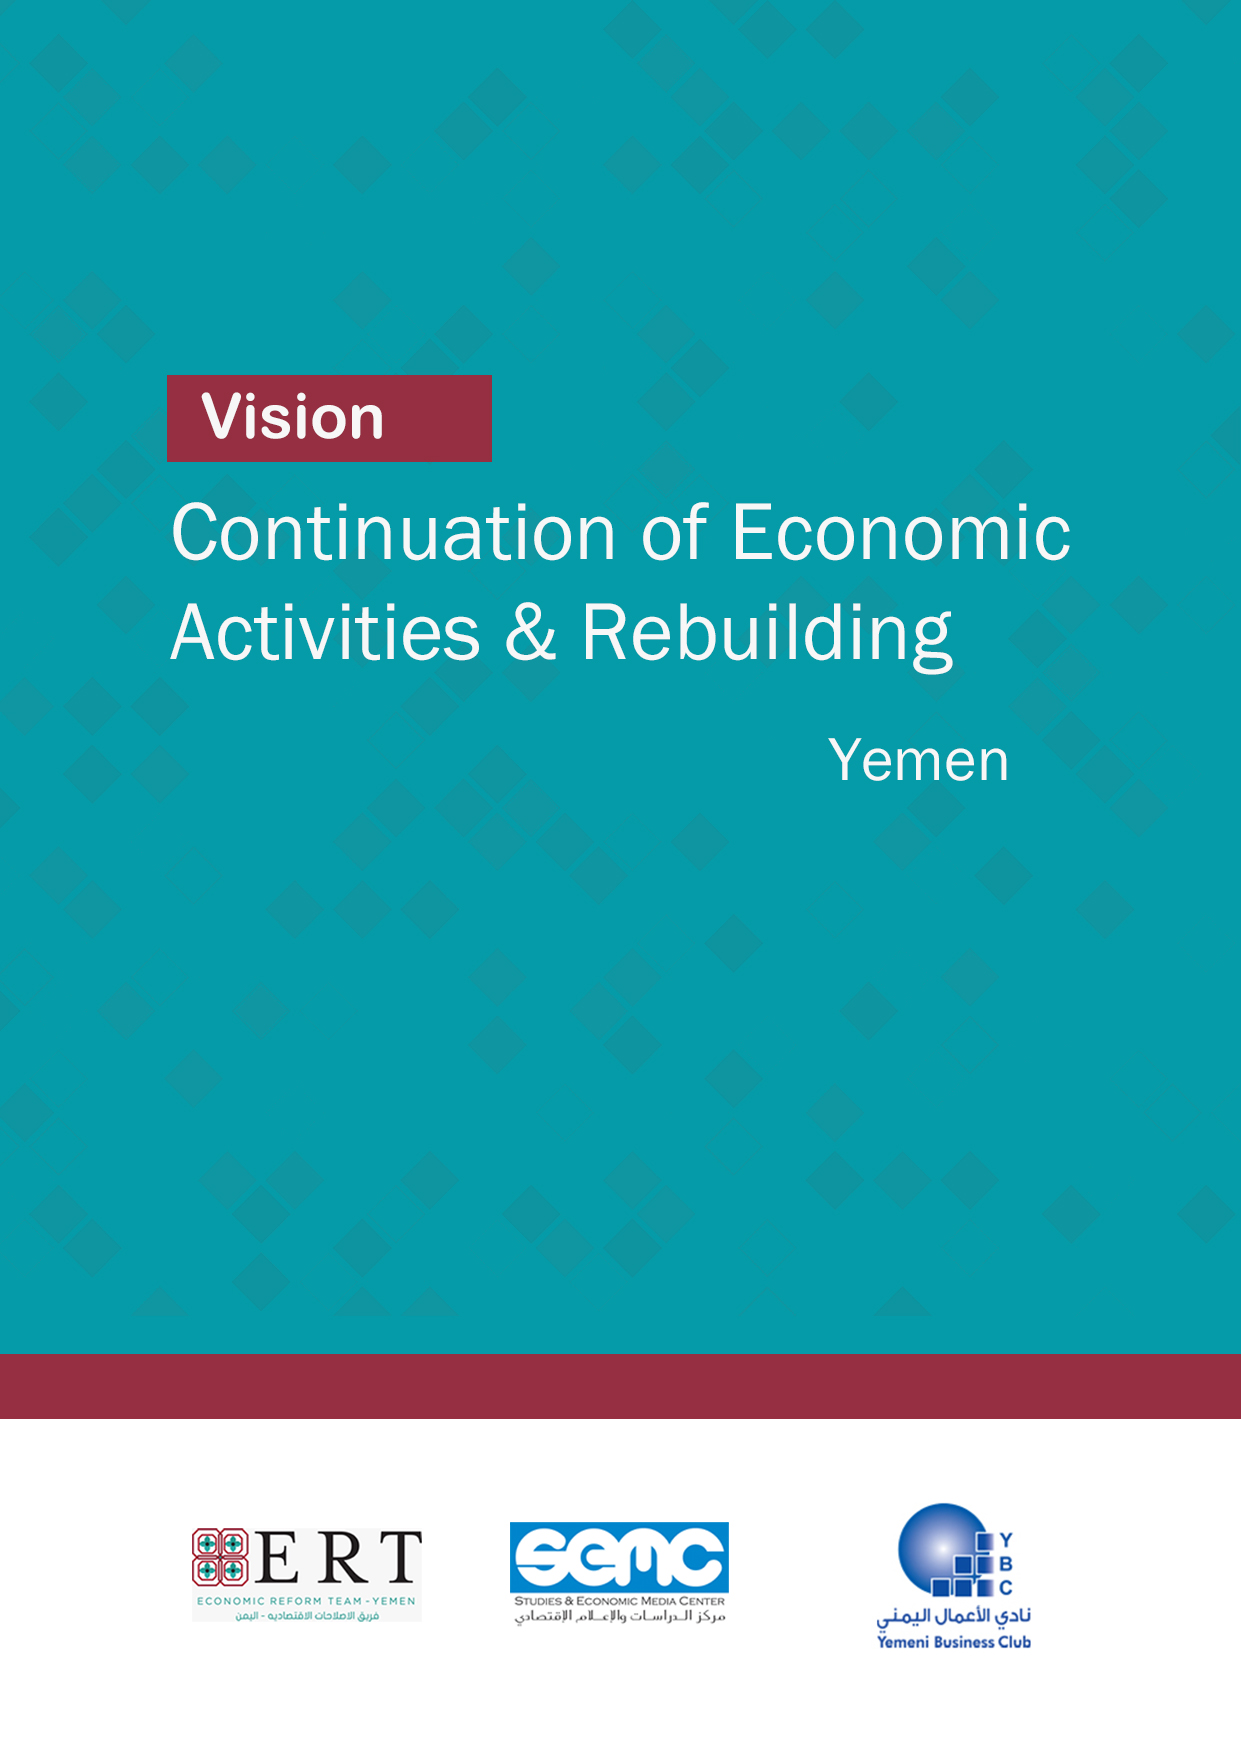 Private Sector Vision On The Continuation Of Economic Activities & Rebuilding Yemen